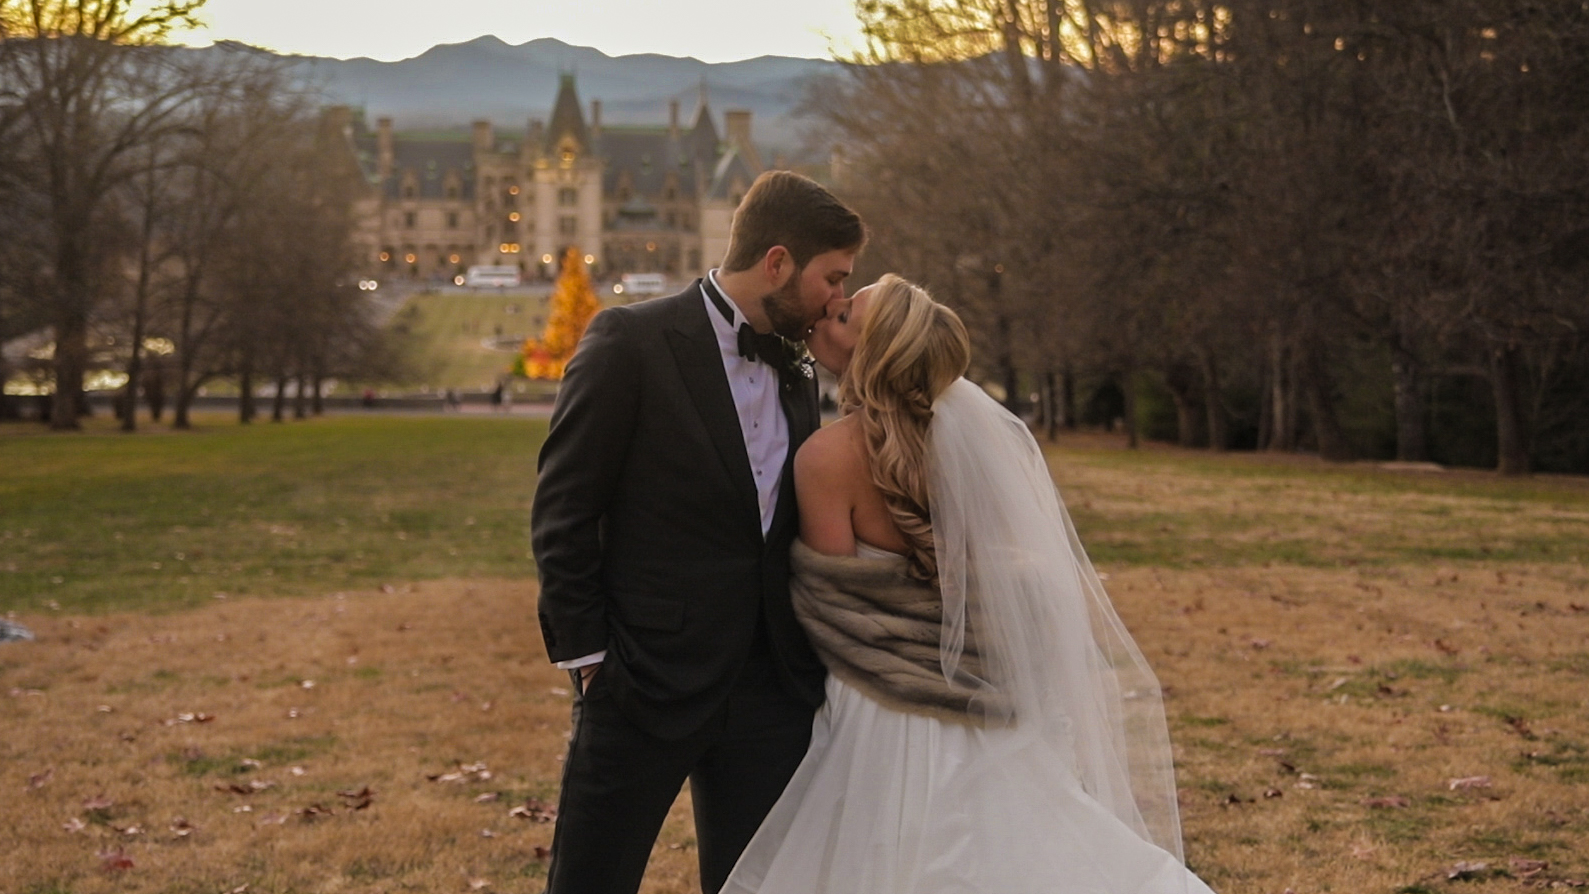 Meredith + Blake | Asheville, North Carolina | Biltmore Estate